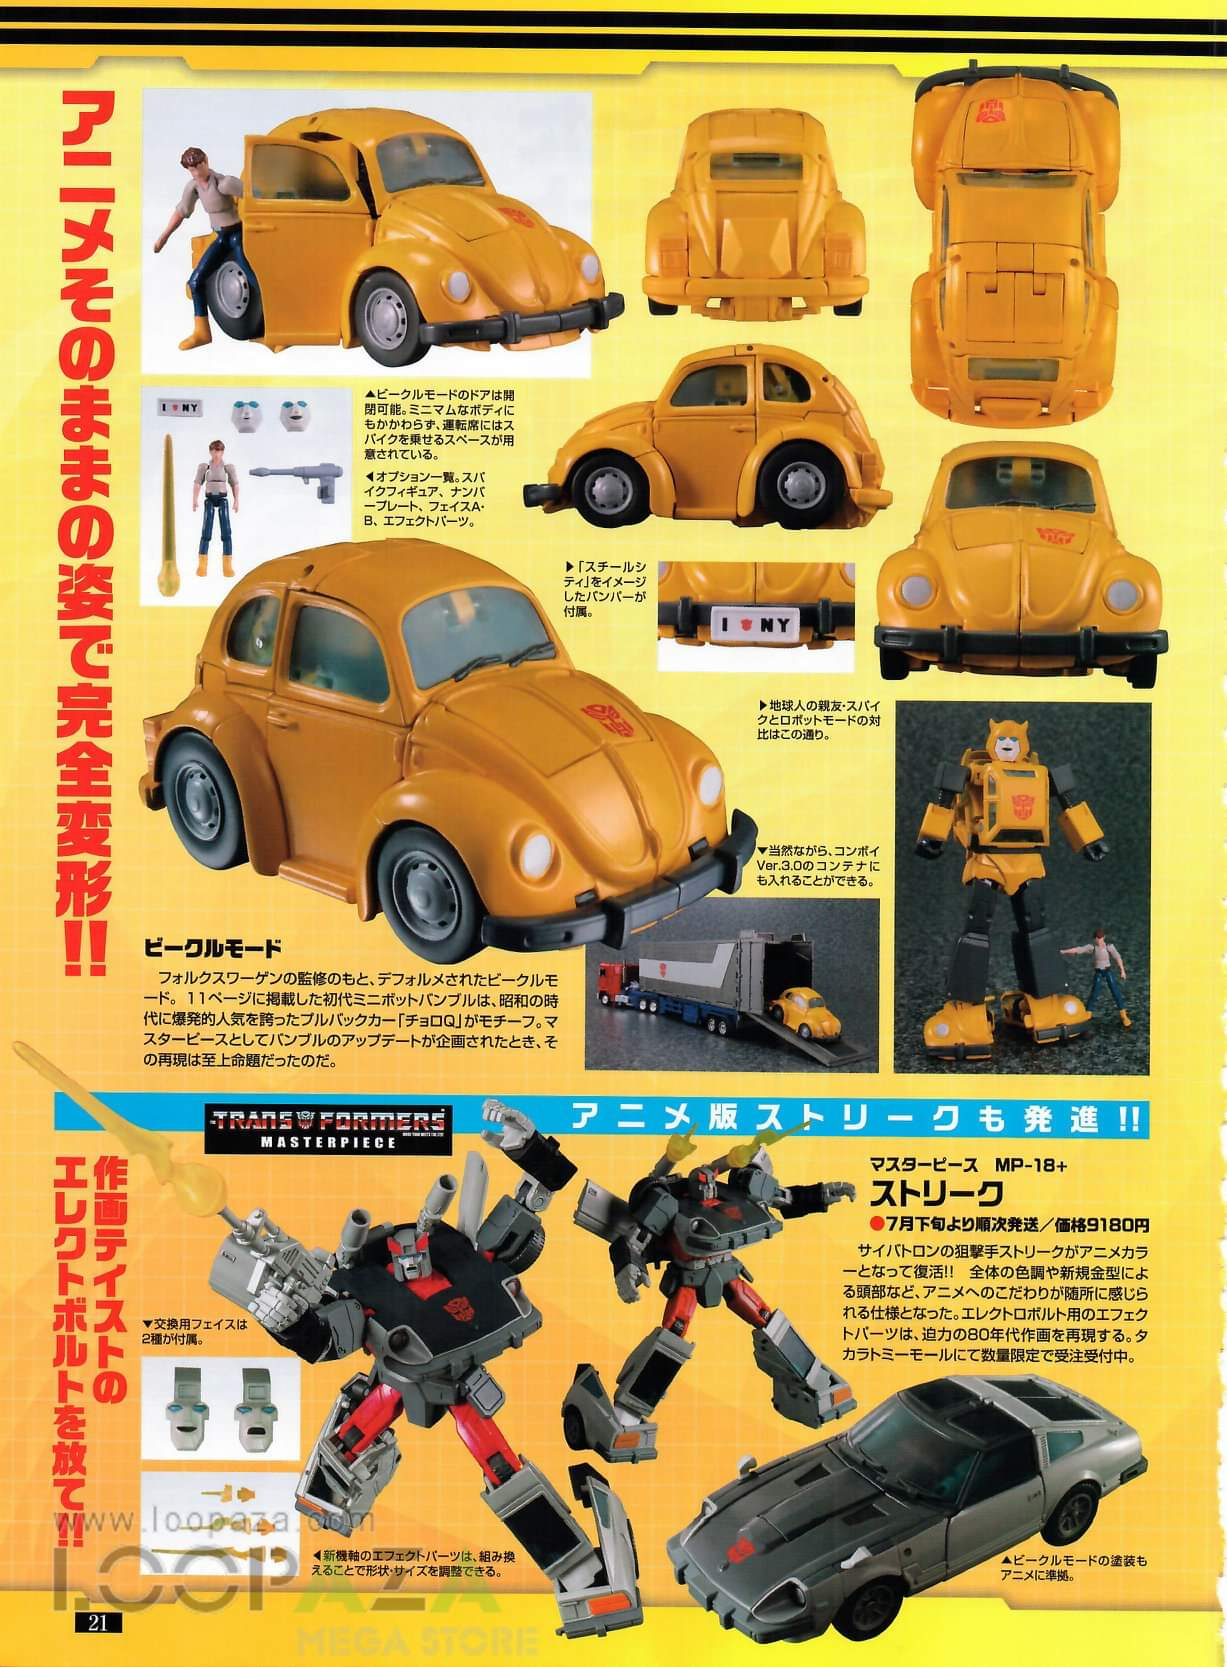 [Masterpiece] MP-45 Bumblebee/Bourdon v2.0 - Page 2 PyeOdGso_o